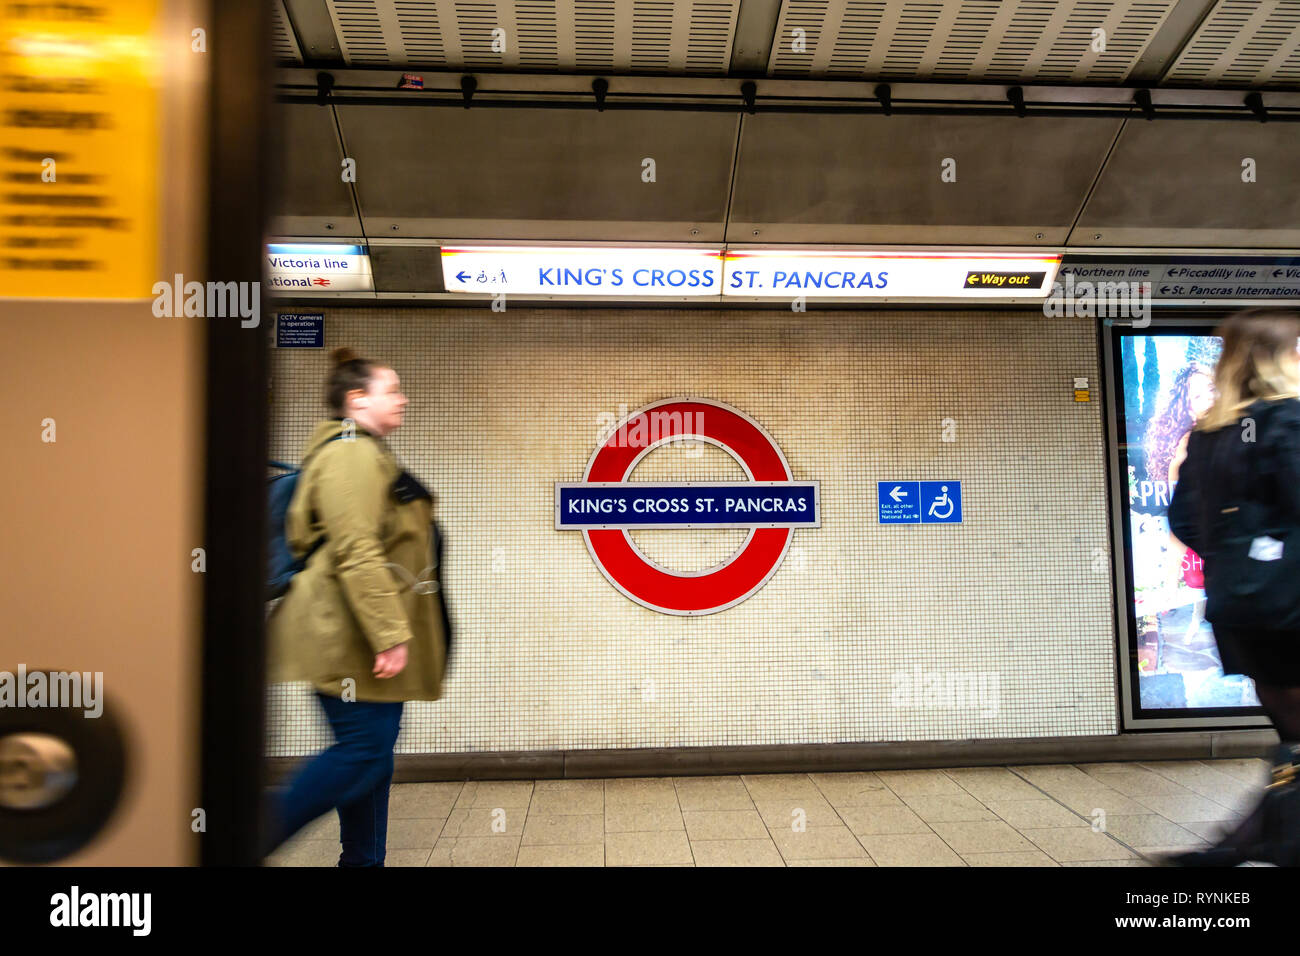 wide angle photograph of people on the platform and Iconic circular Tube sign on the Kings Cross, St Pancras underground platform - Stock Image